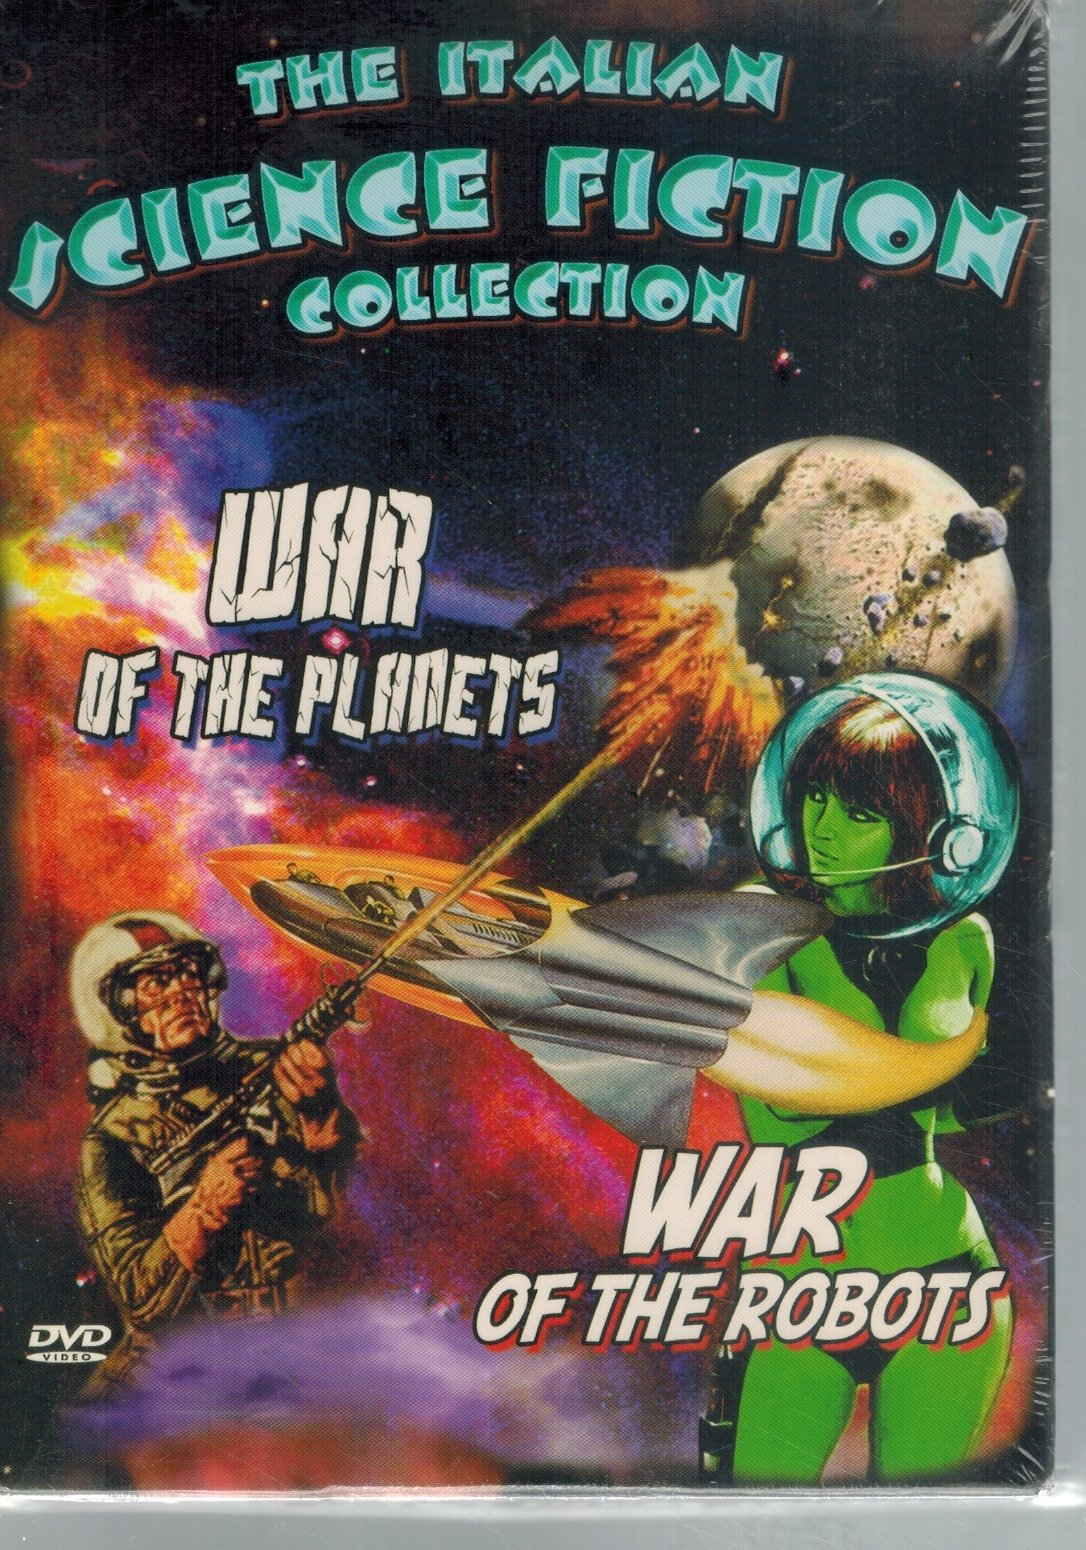 THE ITALIAN SCIENCE FICTION COLLECTION: WAR OF THE PLANETS/WAR OF THE  ROBOTS  by Alessi & Aldo Crudo & Giacomo Mazzocchi & Massimo Lo Jacono